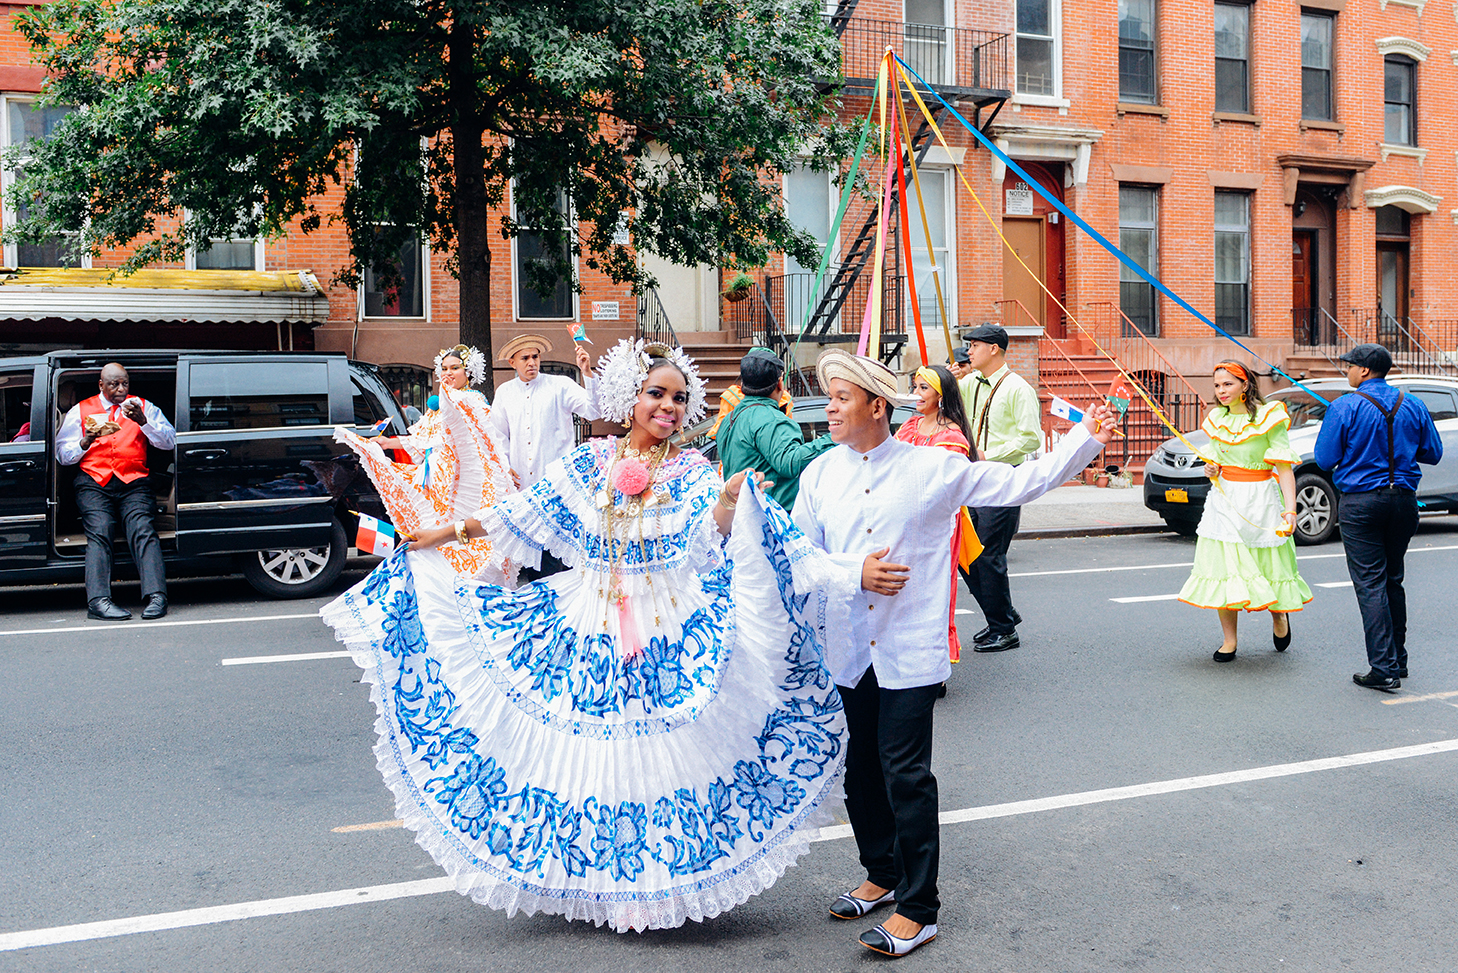 Wanderings in Brooklyn: Brunch, A Bar and Panama's Independence Day